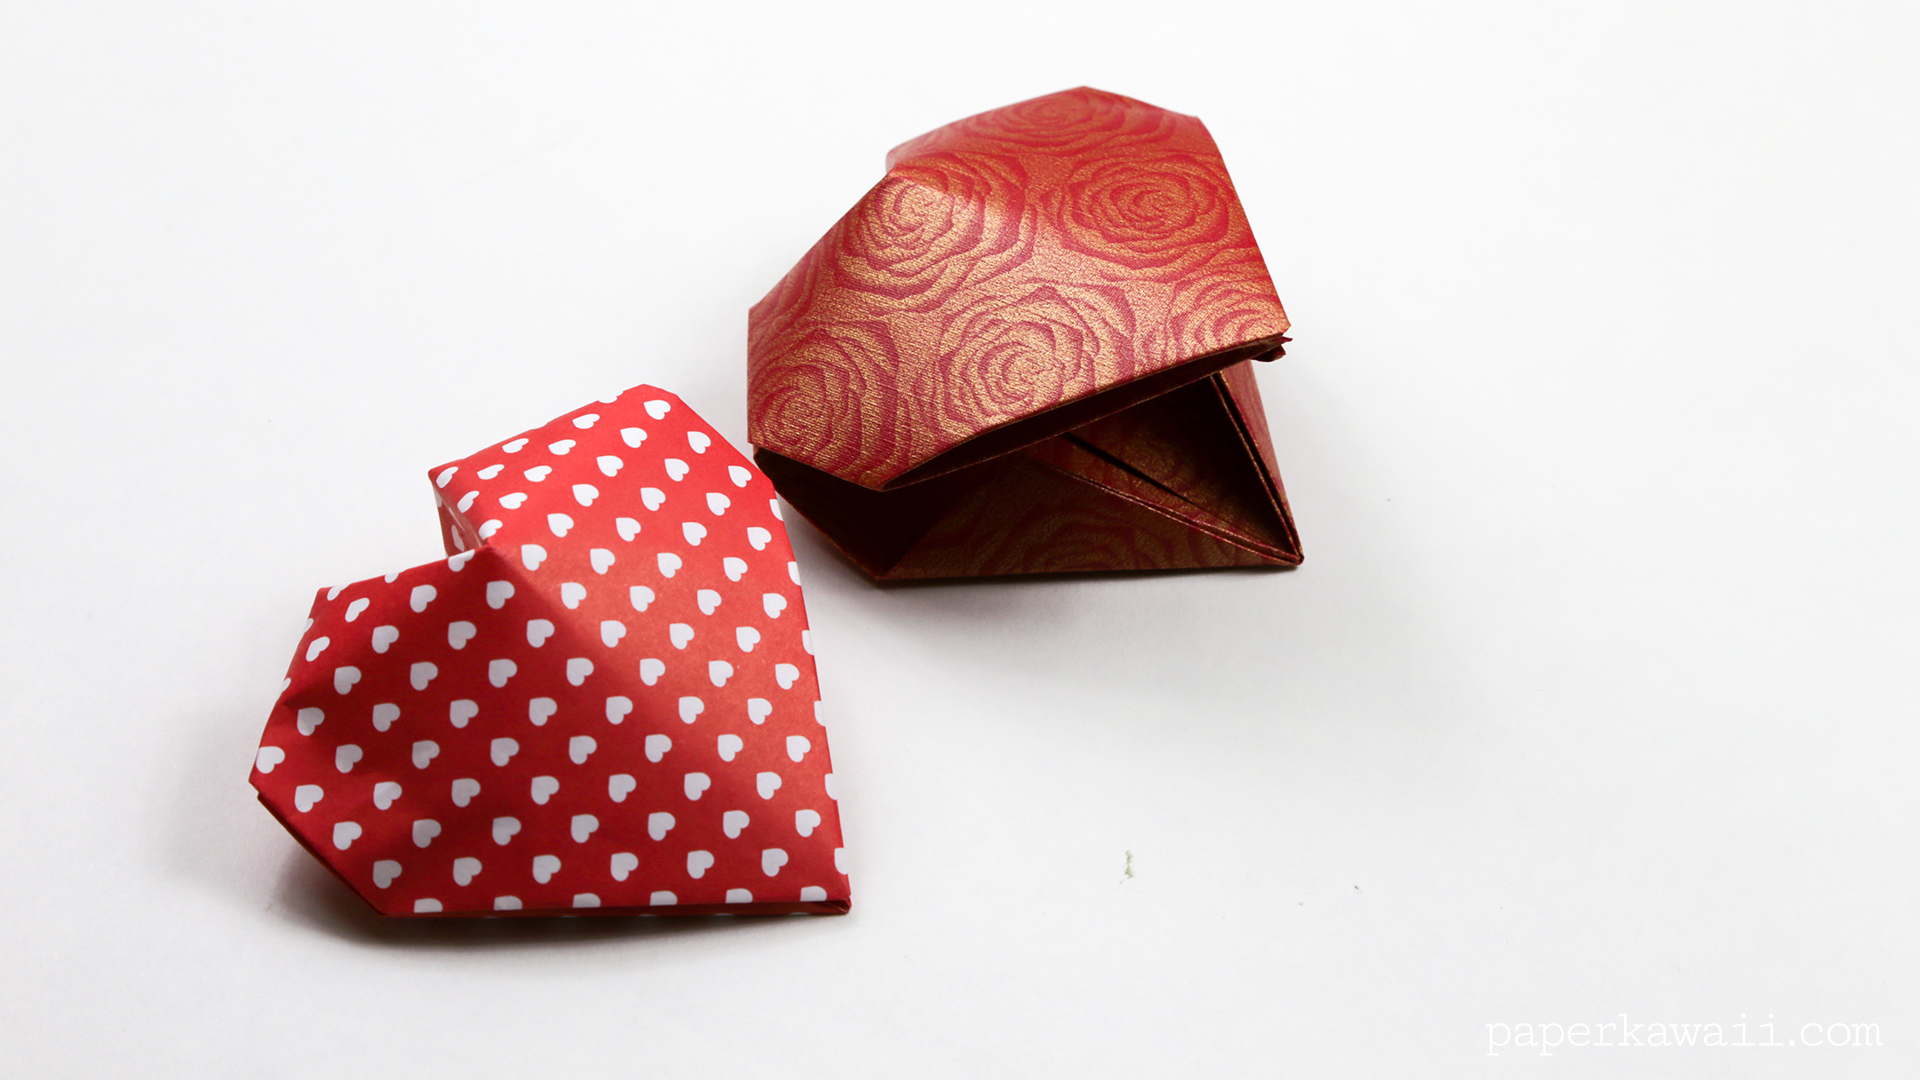 Origami 3D Puffy Heart Instructions - Paper Kawaii - photo#6